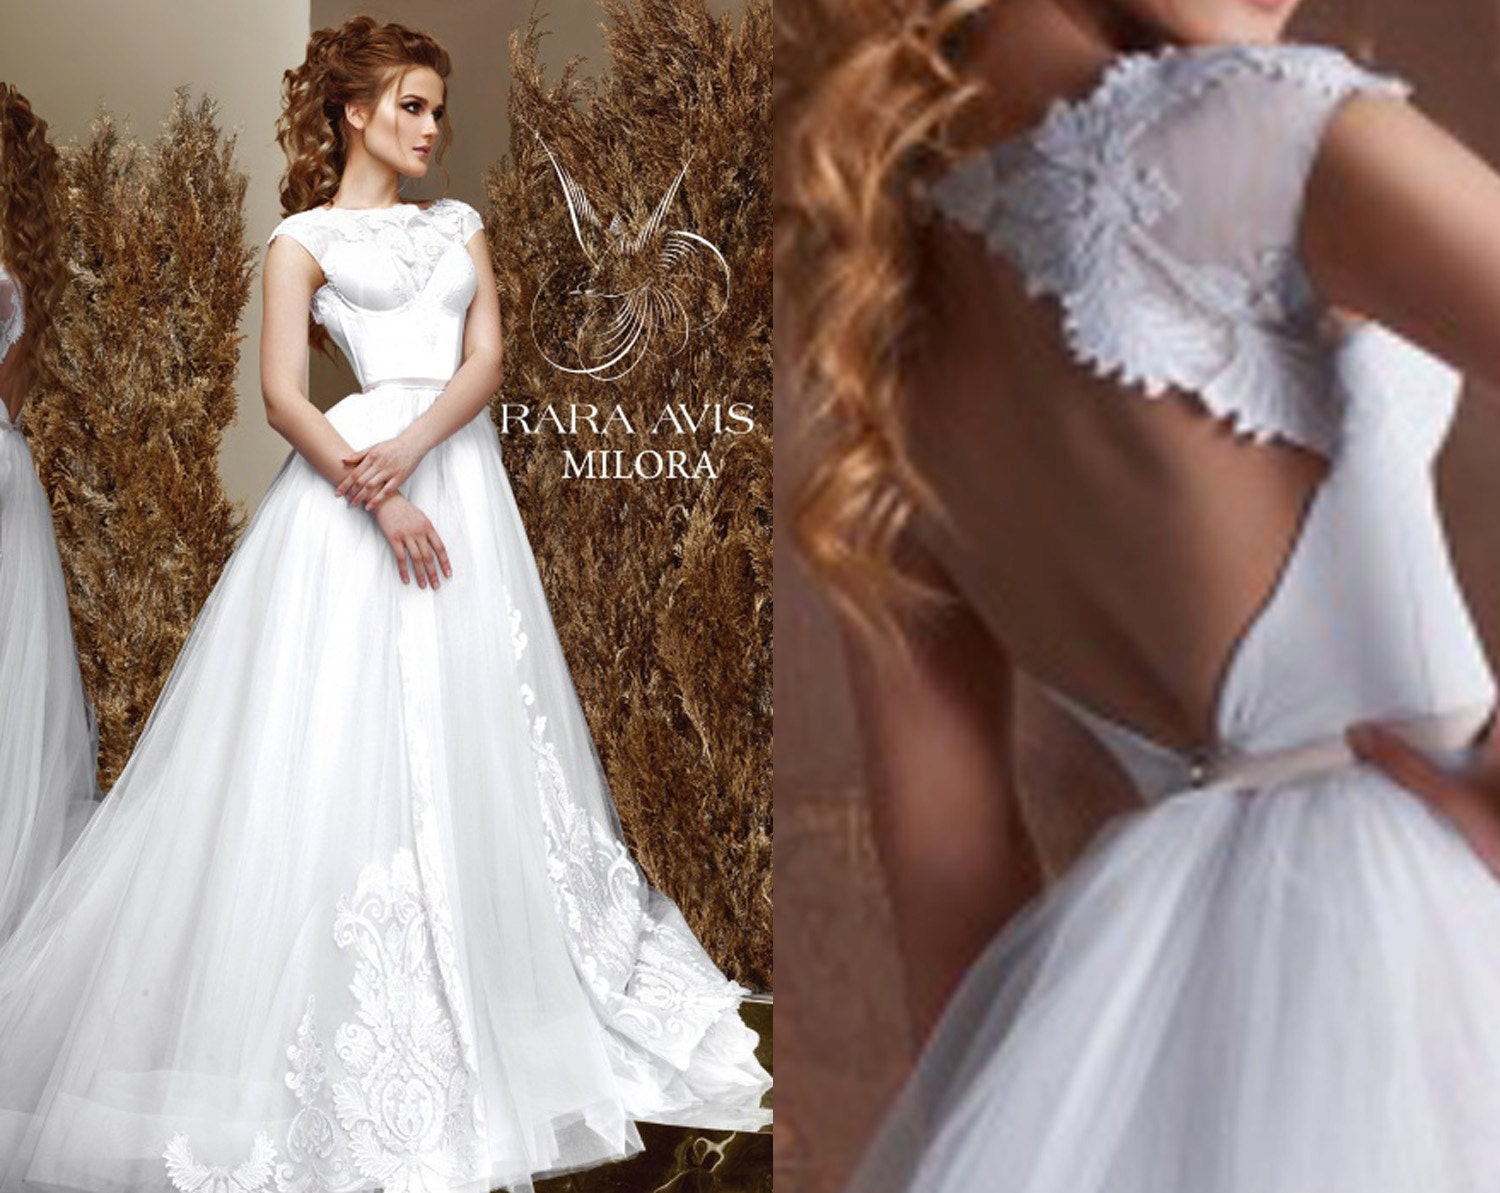 Different Wedding Dresses Ideas : Bridal gown milora unique wedding by raraavisangeetoiles